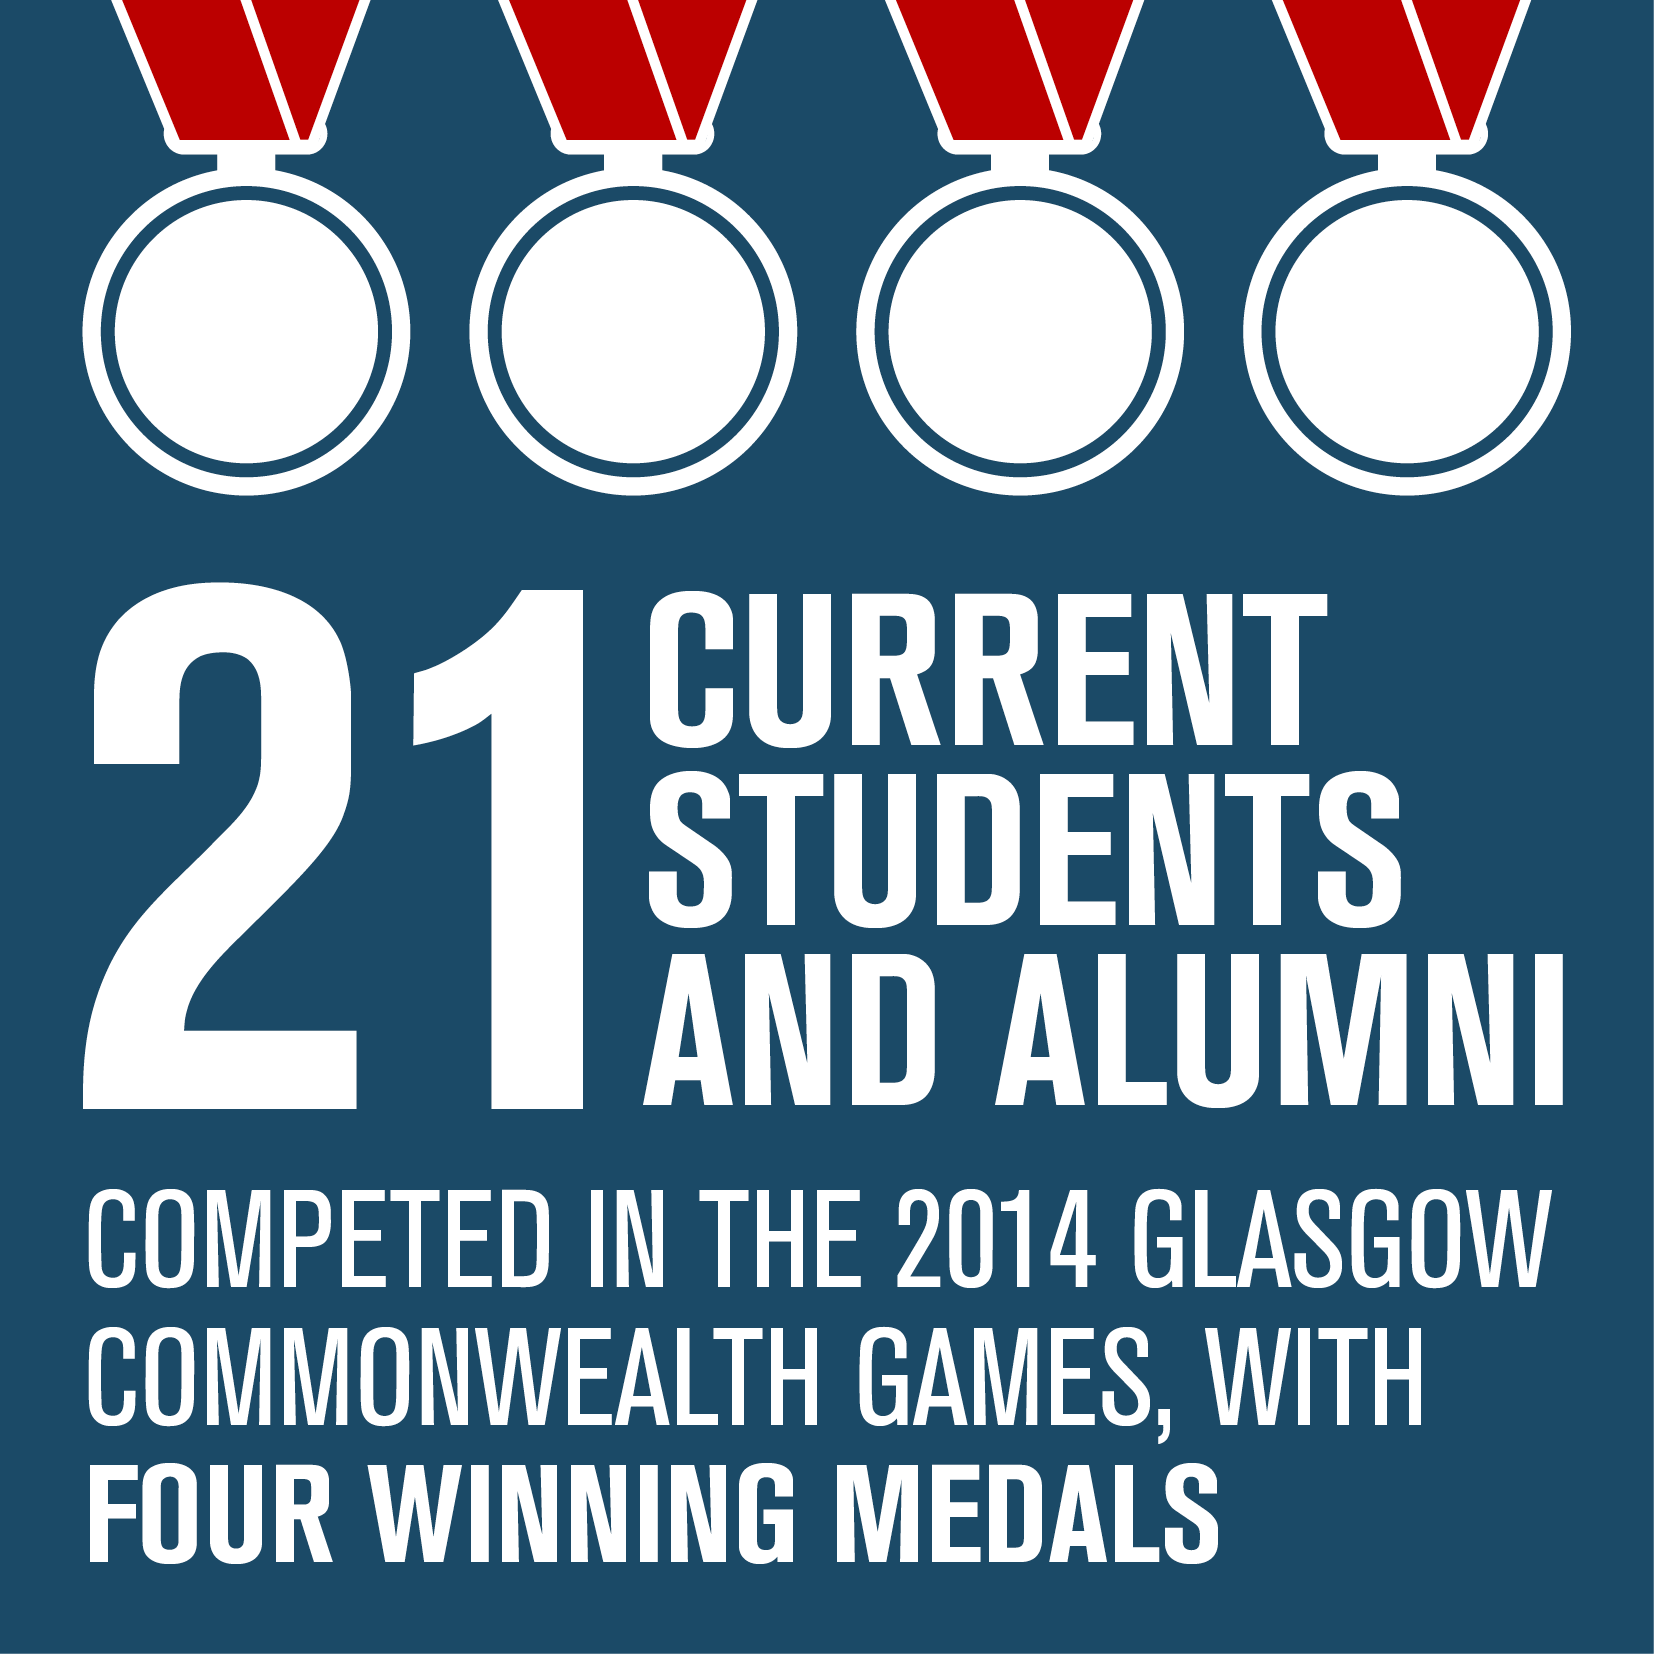 21 Current students and alumni competed in the 2014 Glasgow Commonwealth Games, with four winning medals